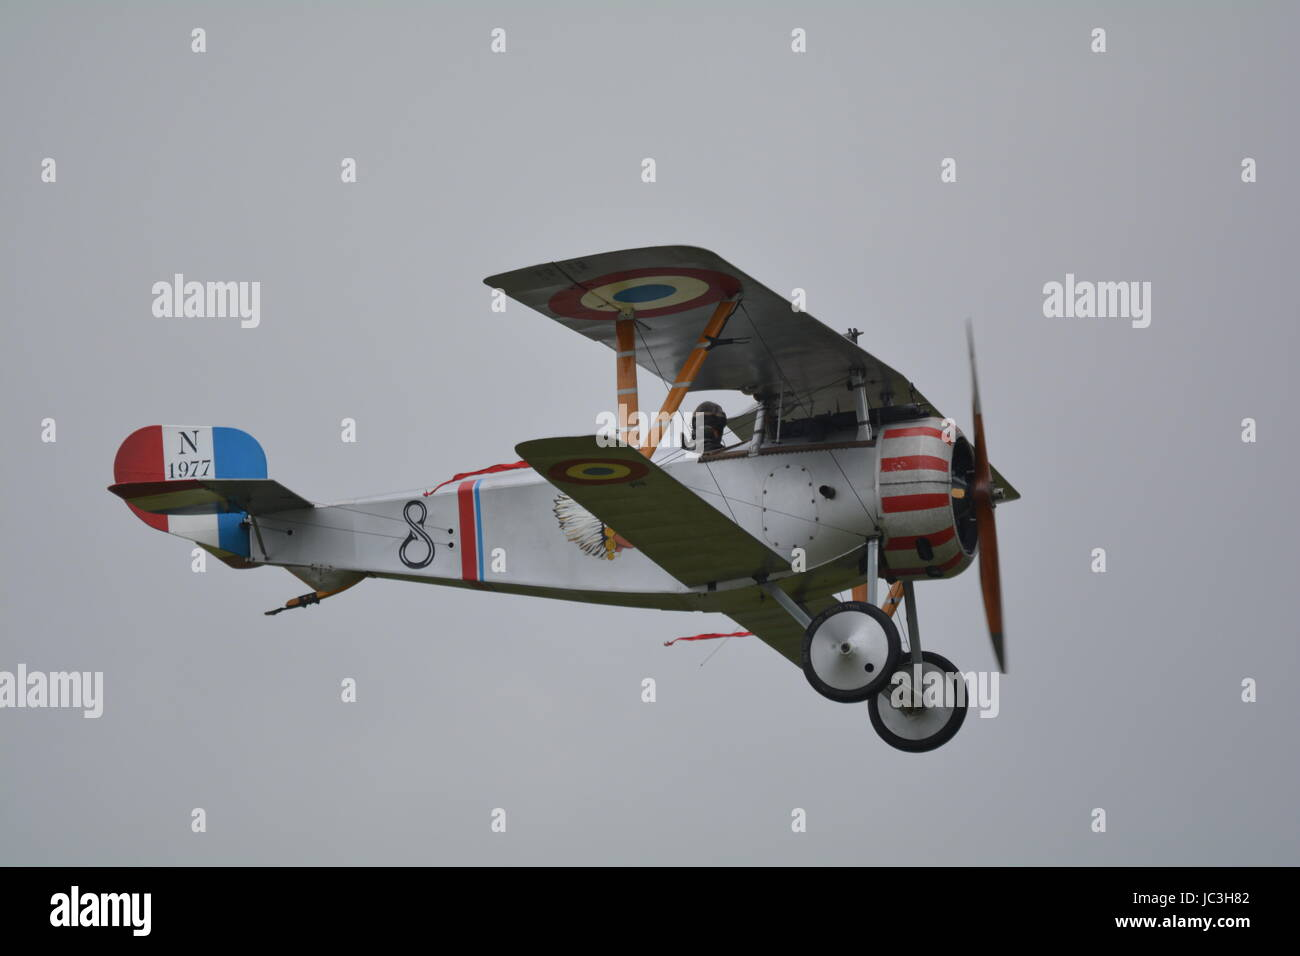 World war 1 fighter bi plane Nieuport 17 replica in hanger at IWM Duxford - Stock Image